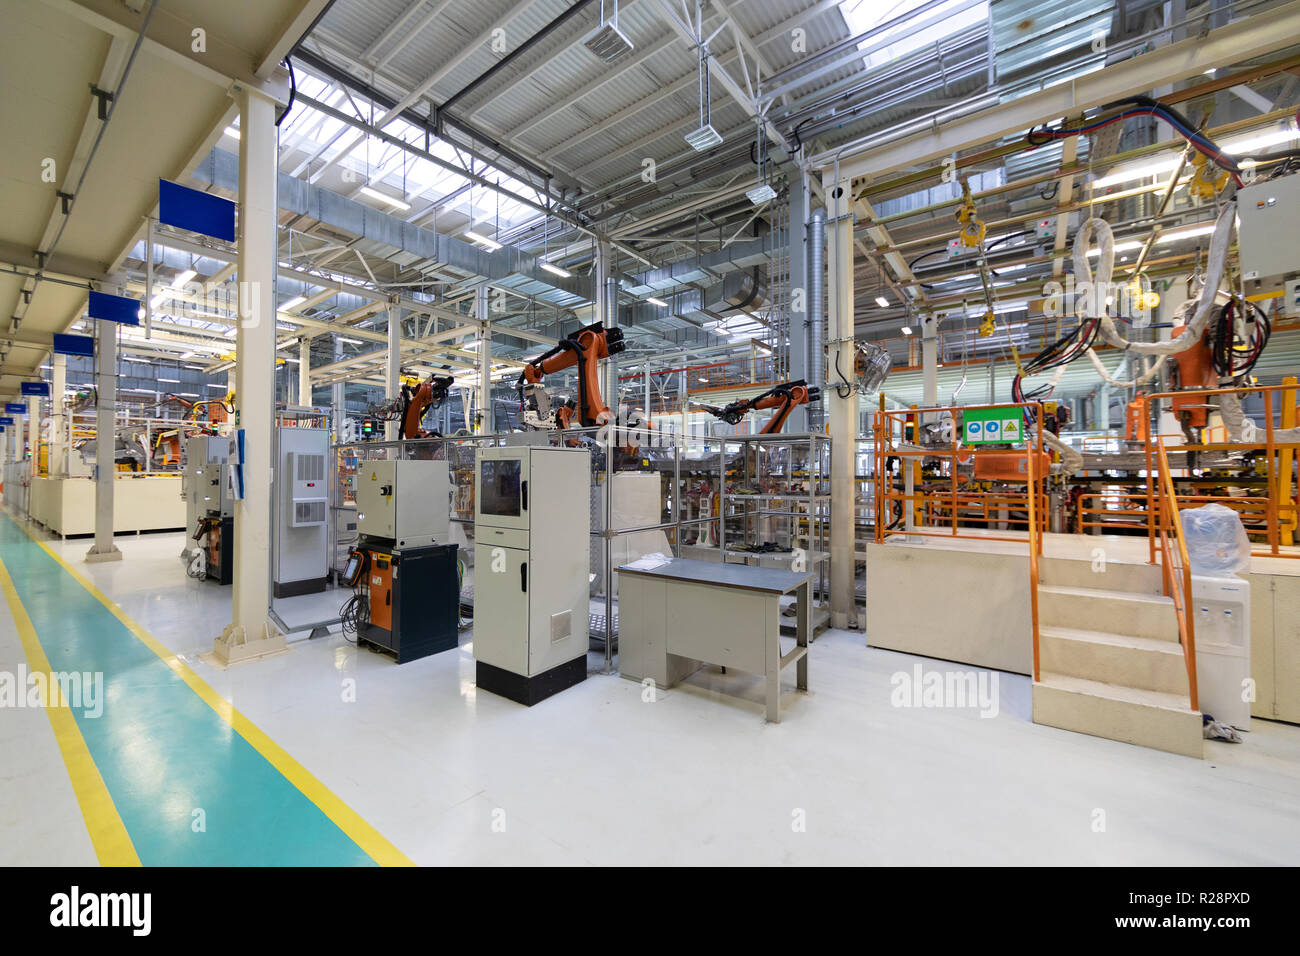 process of welding cars. Modern Assembly of cars at plant. automated build process of car body Stock Photo